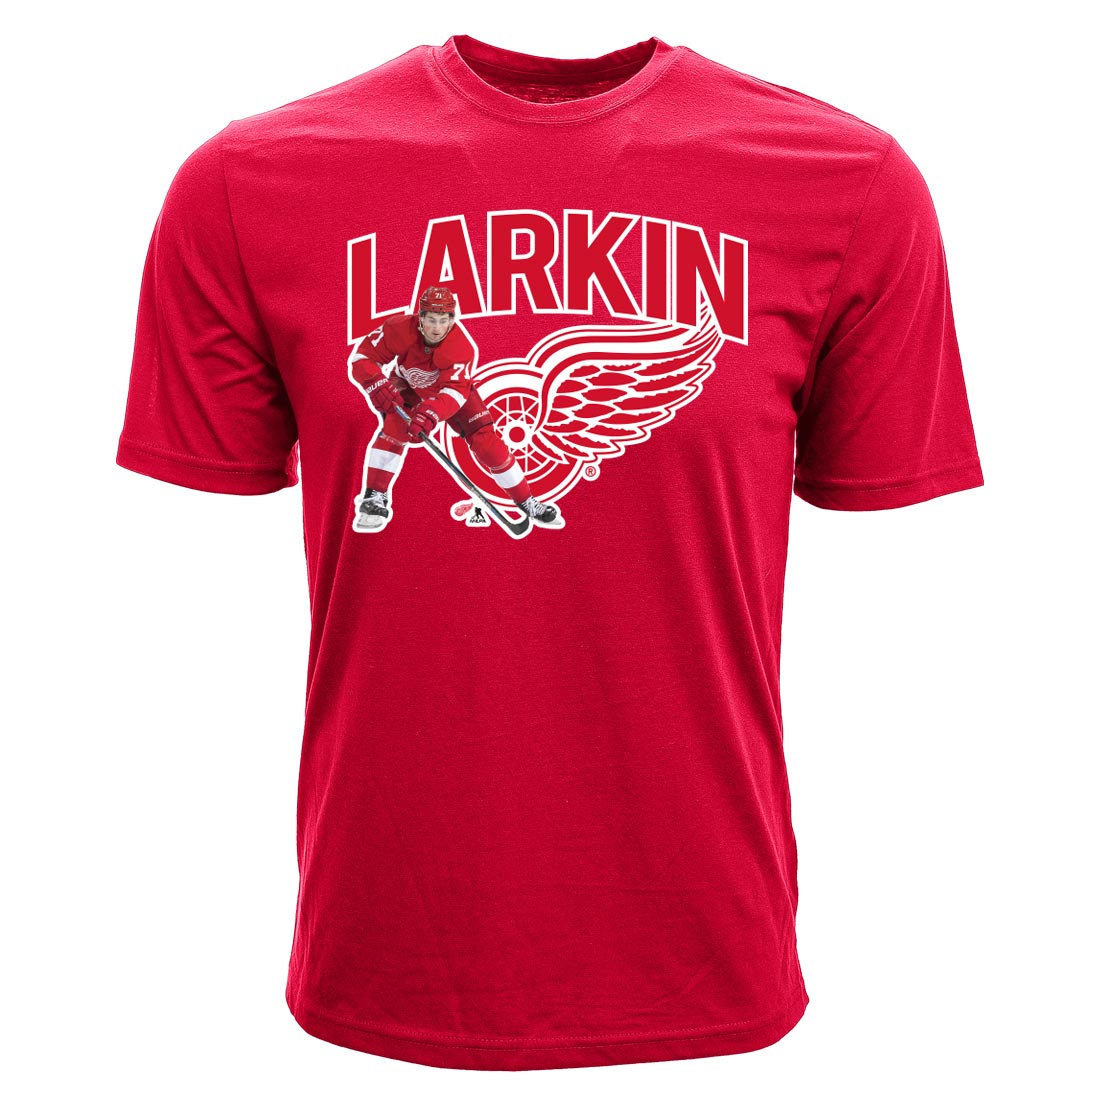 Detroit Red Wings Dylan Larkin NHL Action Pop Applique T-Shirt - Levelwear - image 2 of 2